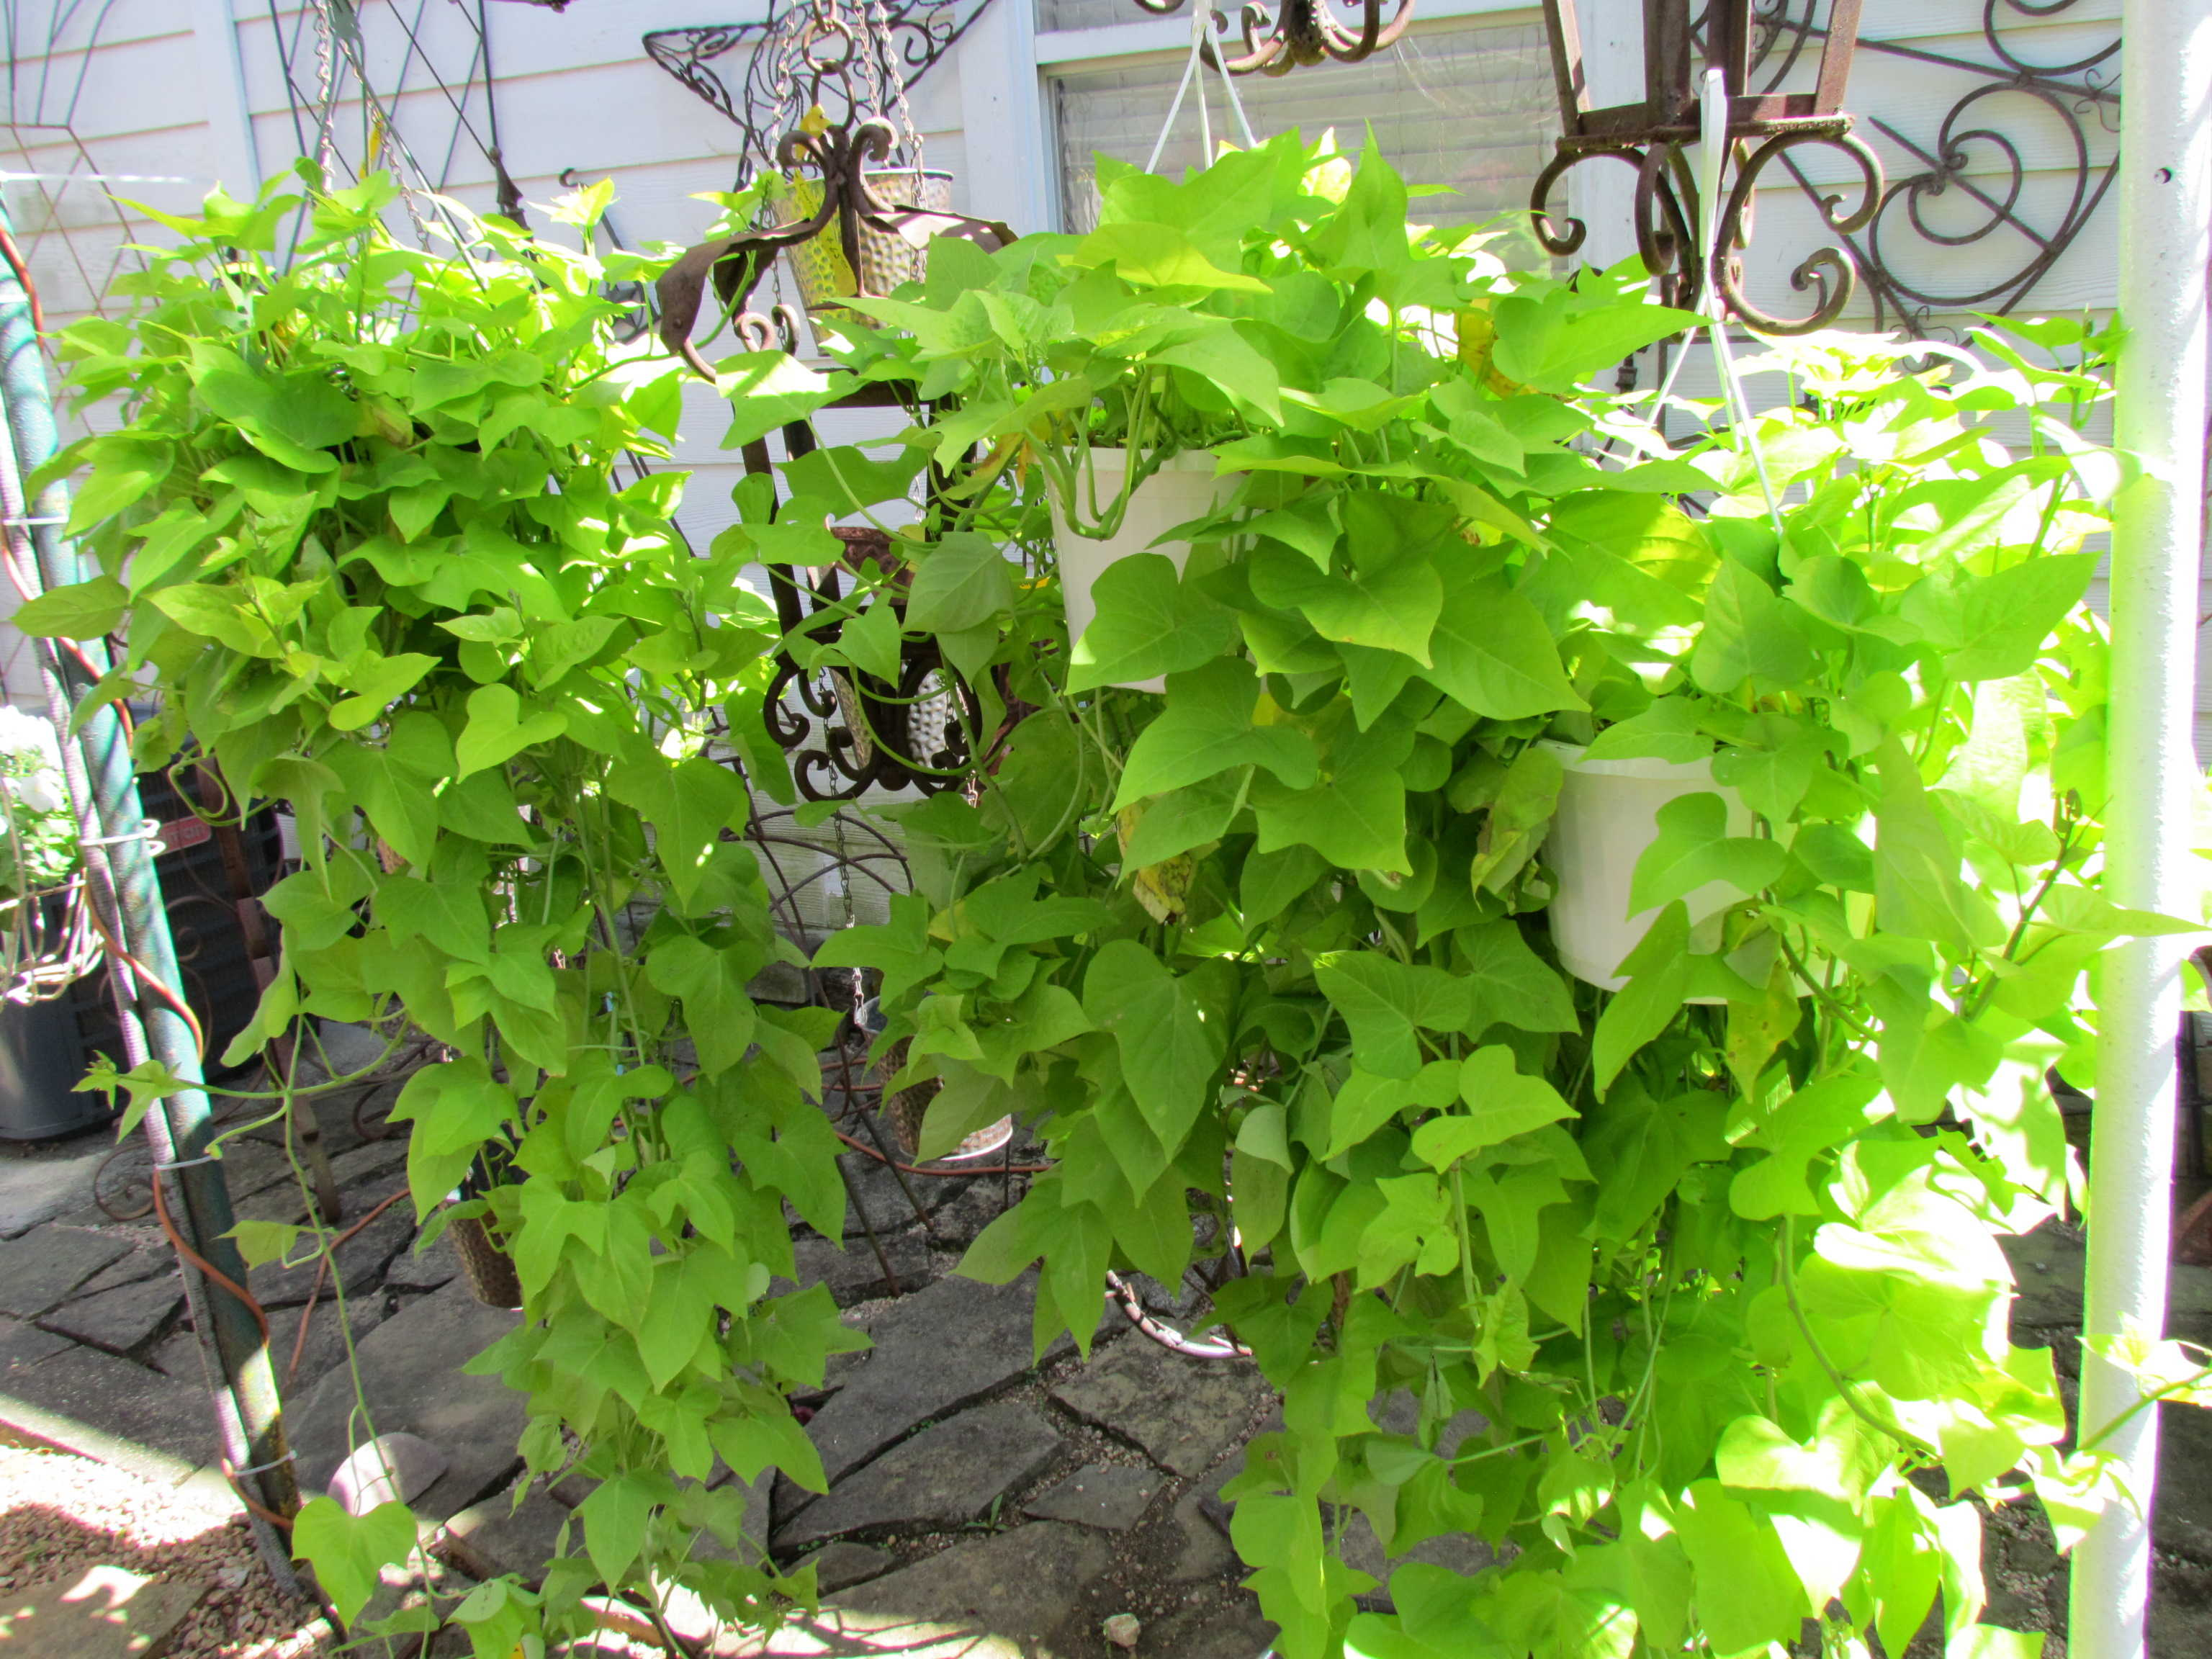 Large selection of vining plants at J&J Nursery, Spring, TX